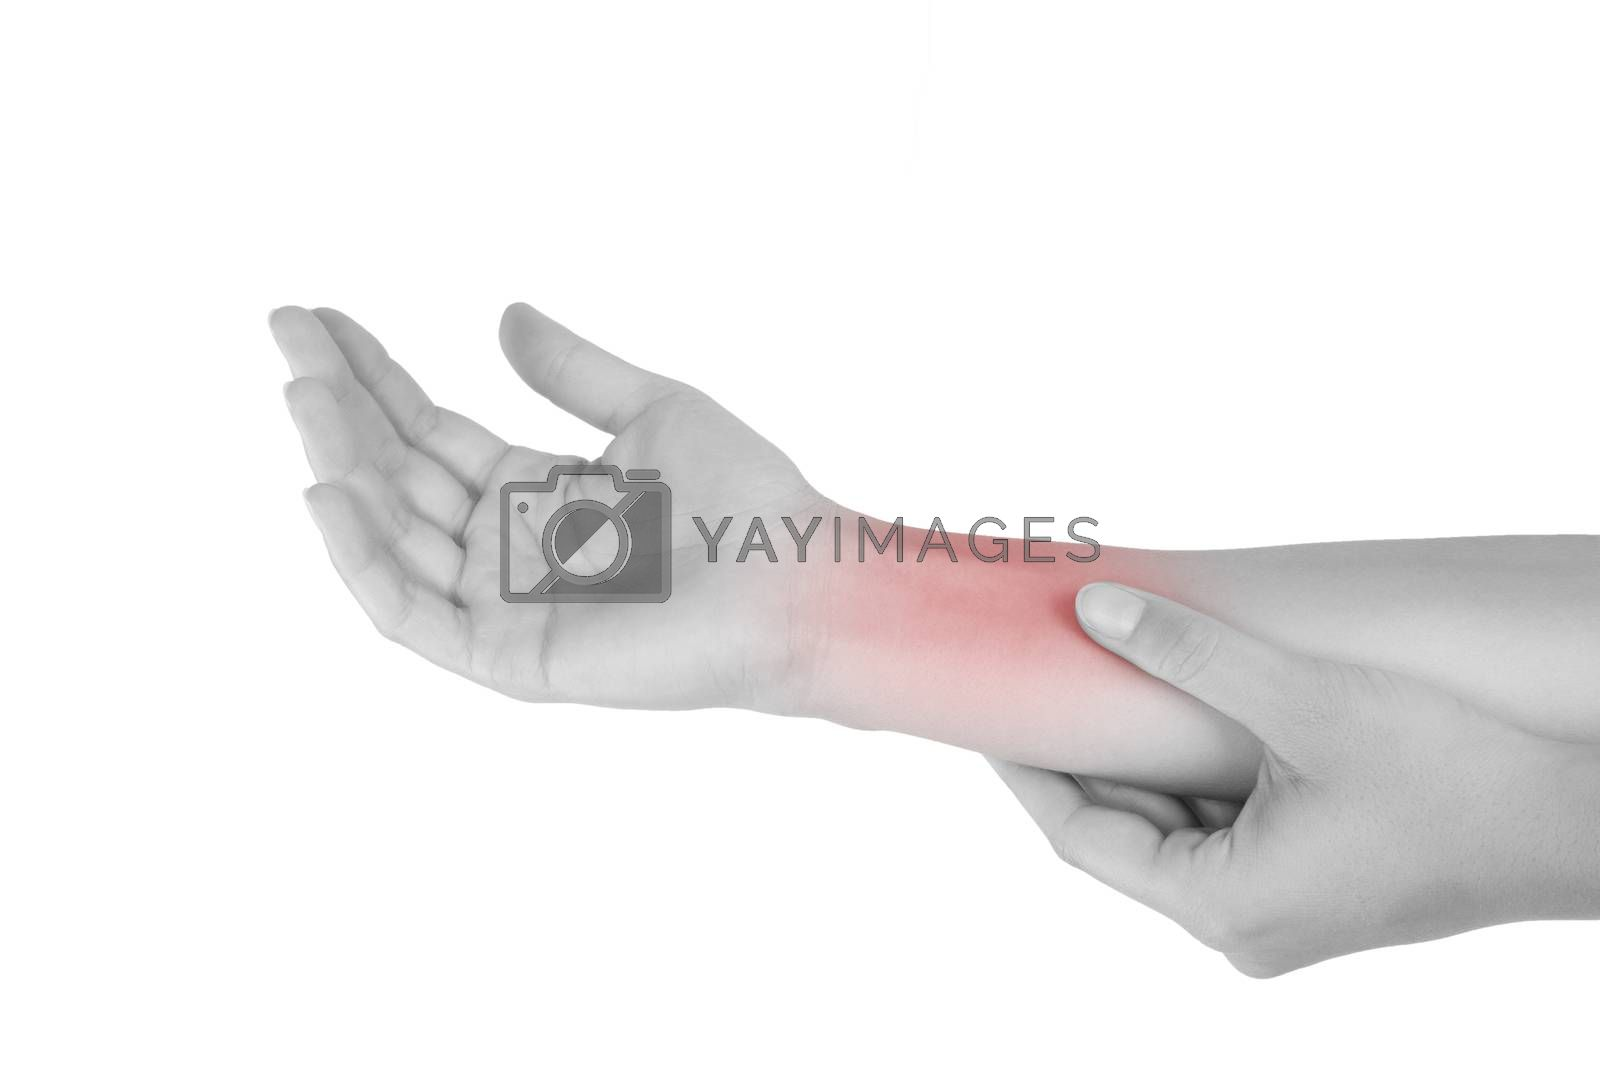 Forearm muscle strain. Female hand touching forearm isolated on white background.